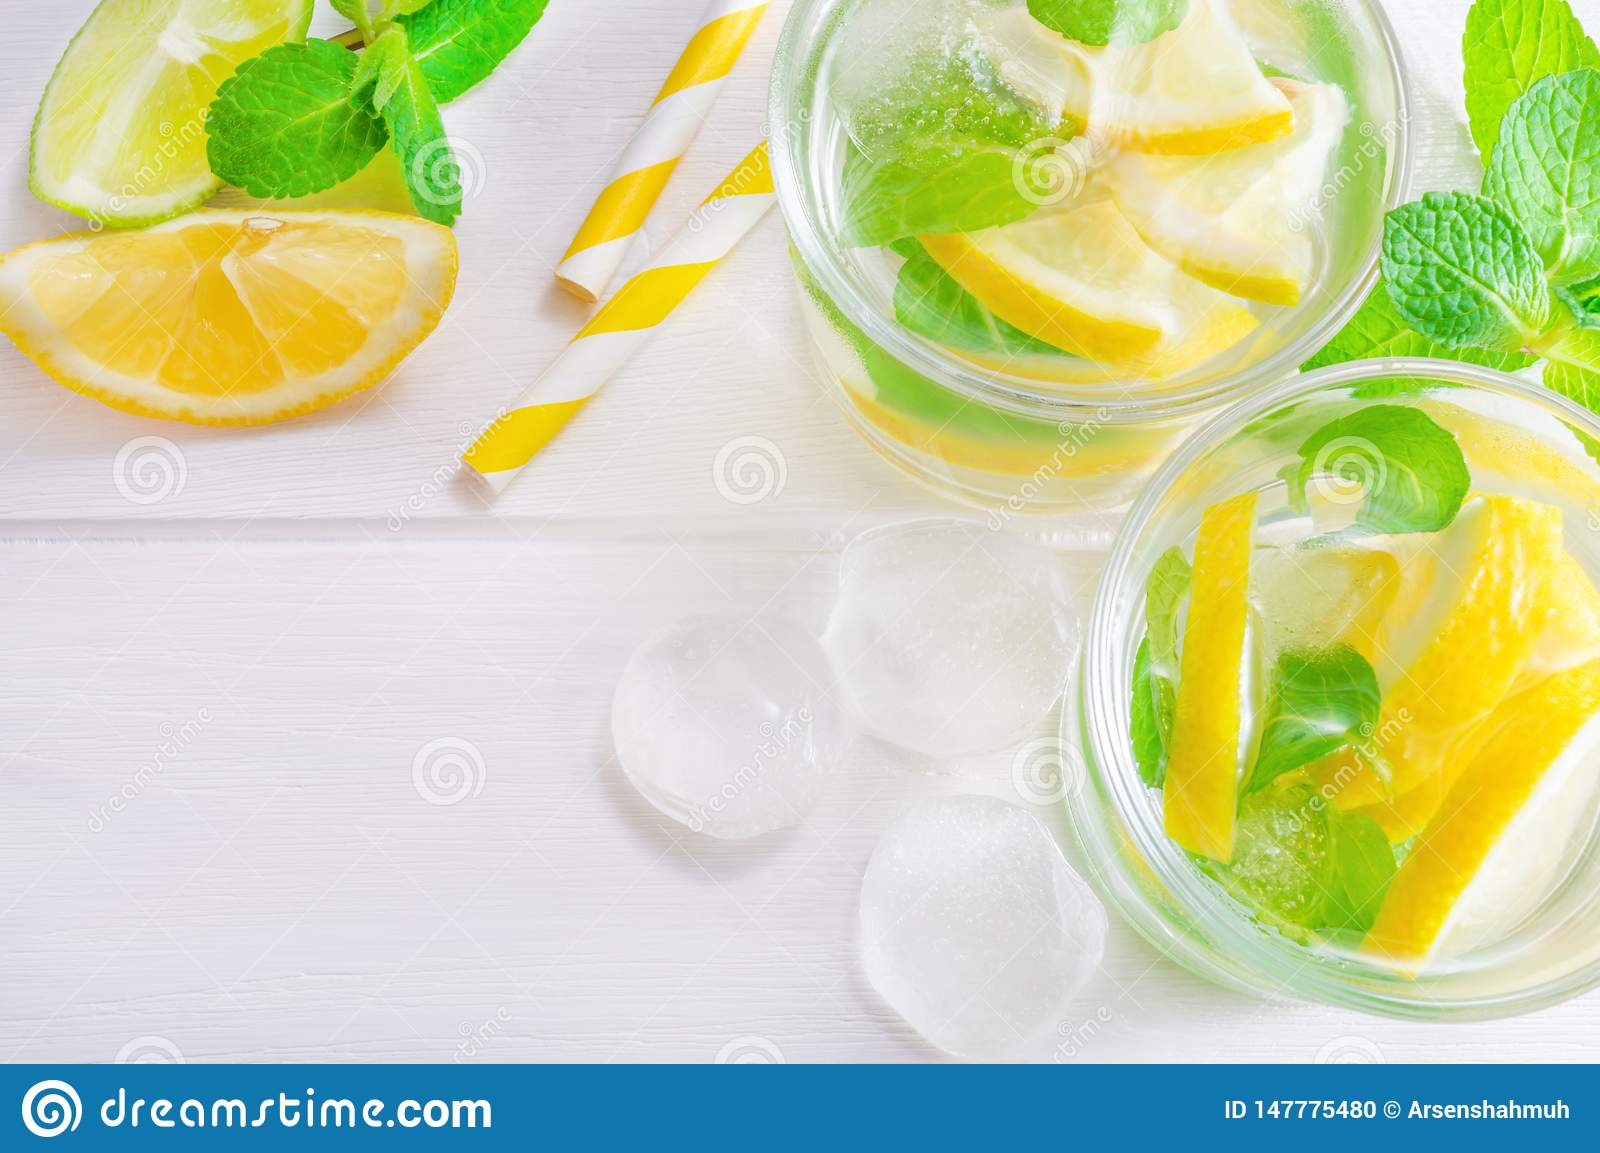 Summer drink mojito with lime, lemon and mint, with ice cubes on white wooden background. Flat-lay, top view